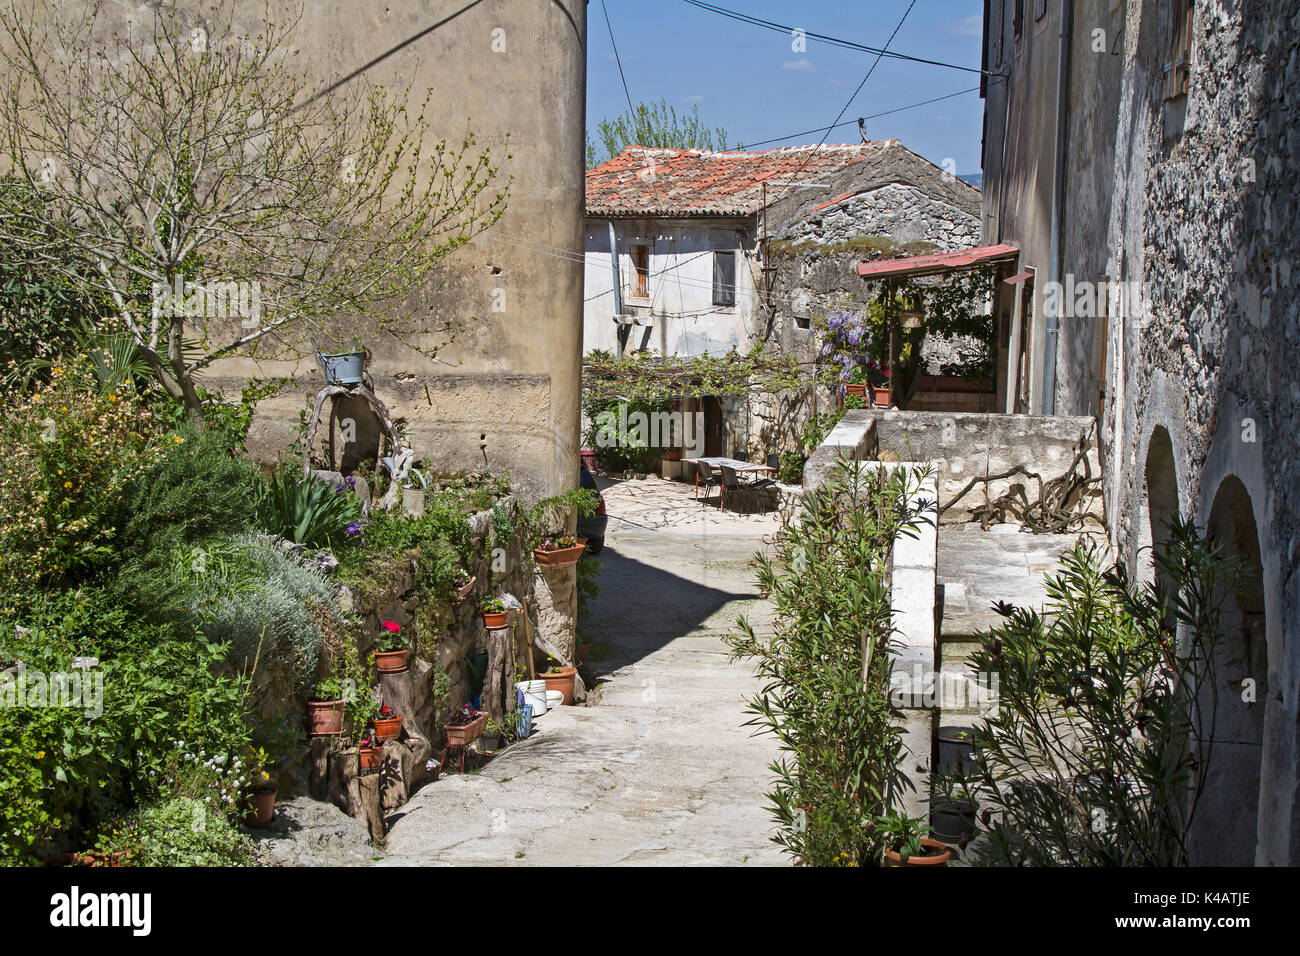 Alley In Krsan, A Small Idyllic Village Situated Inland Of The Istrian Peninsula - Stock Image